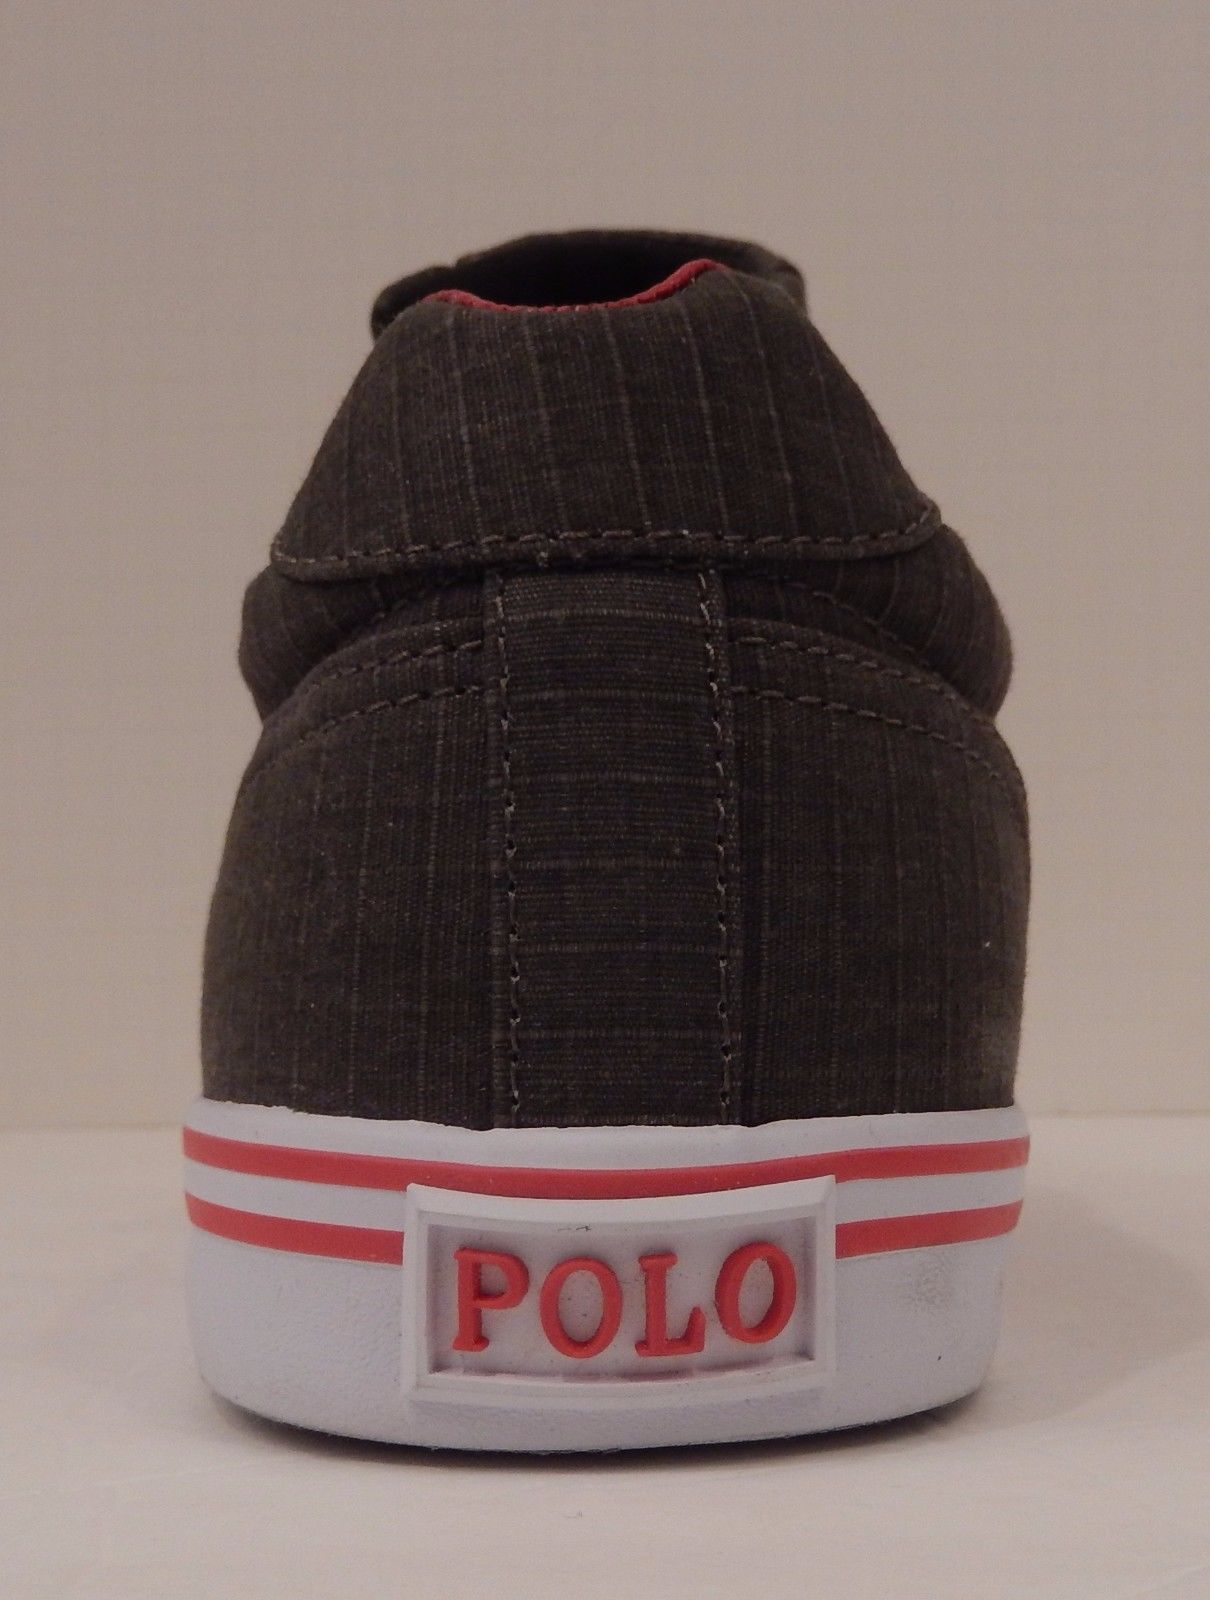 POLO RALPH LAUREN MENS SIZE 14 D GRAY RED RIPSTOP CANVAS FASHION SNEAKER HANFORD